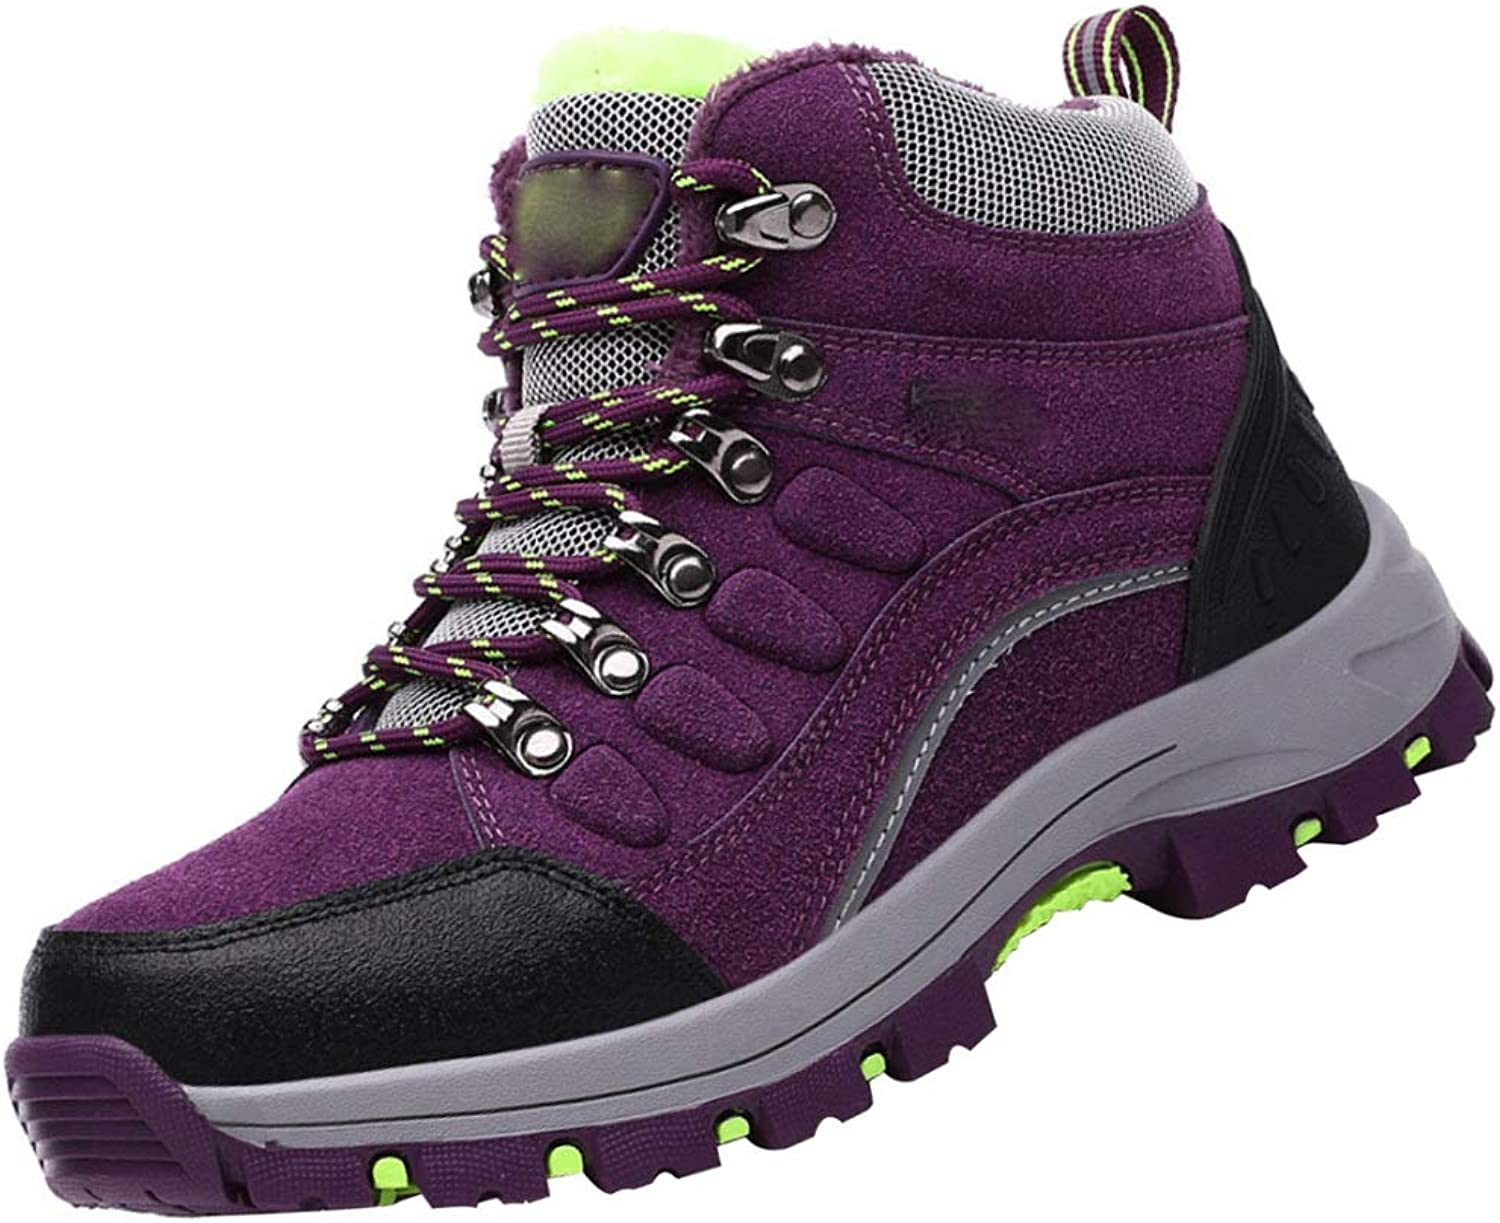 Hiking shoes Couple Models Autumn And Winter Outdoor Sports shoes Hiking shoes Non-slip Plus Cotton Warm Cotton shoes